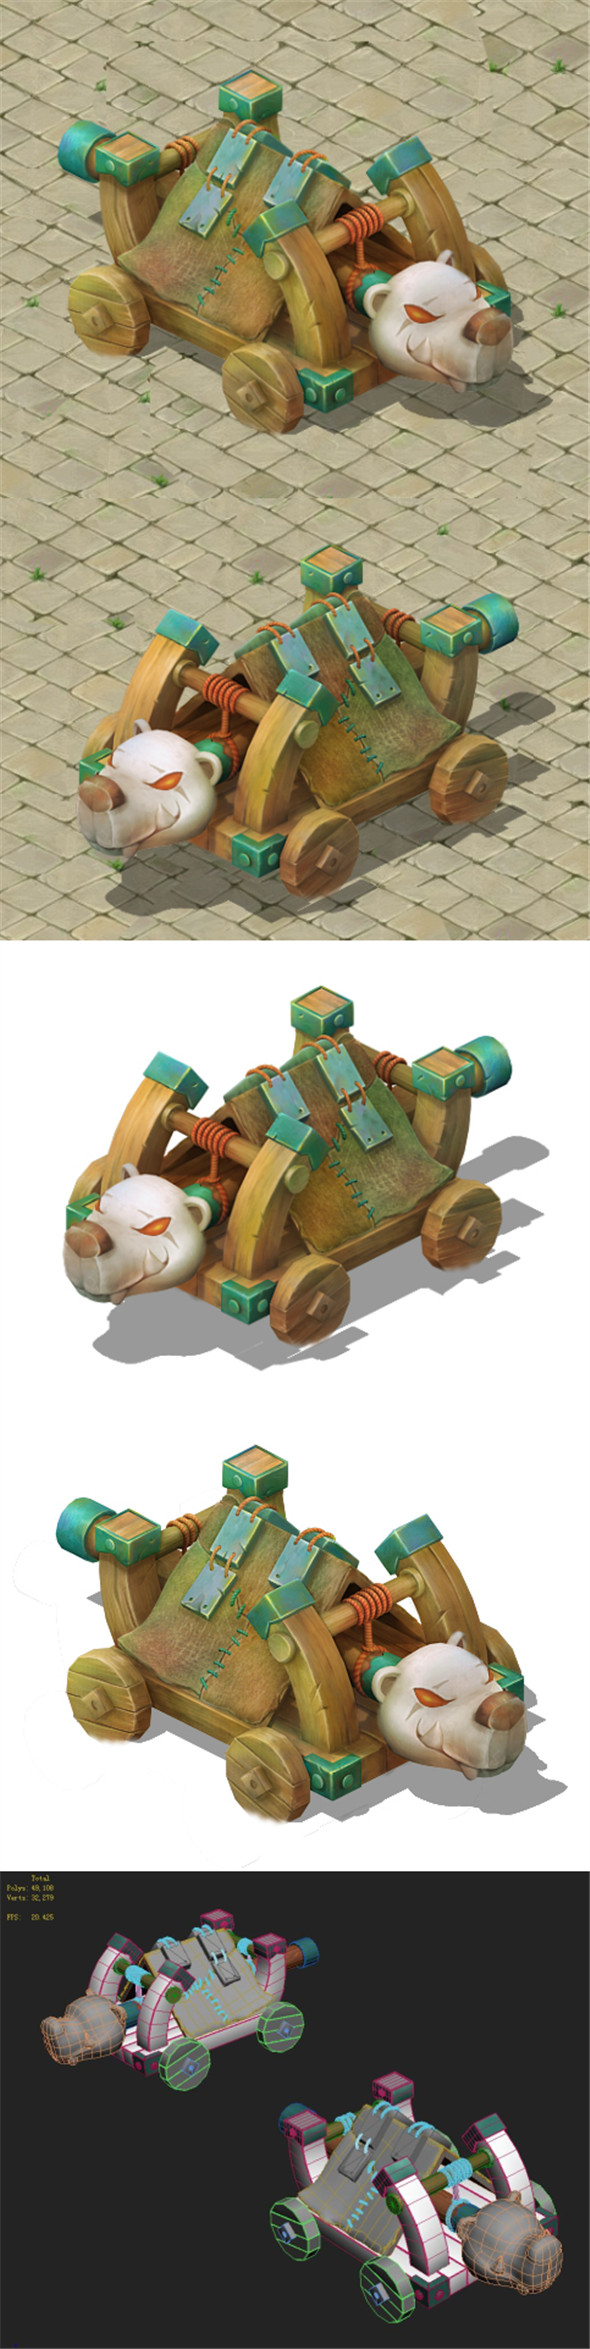 Cartoon version - Polar bear siege car - 3DOcean Item for Sale